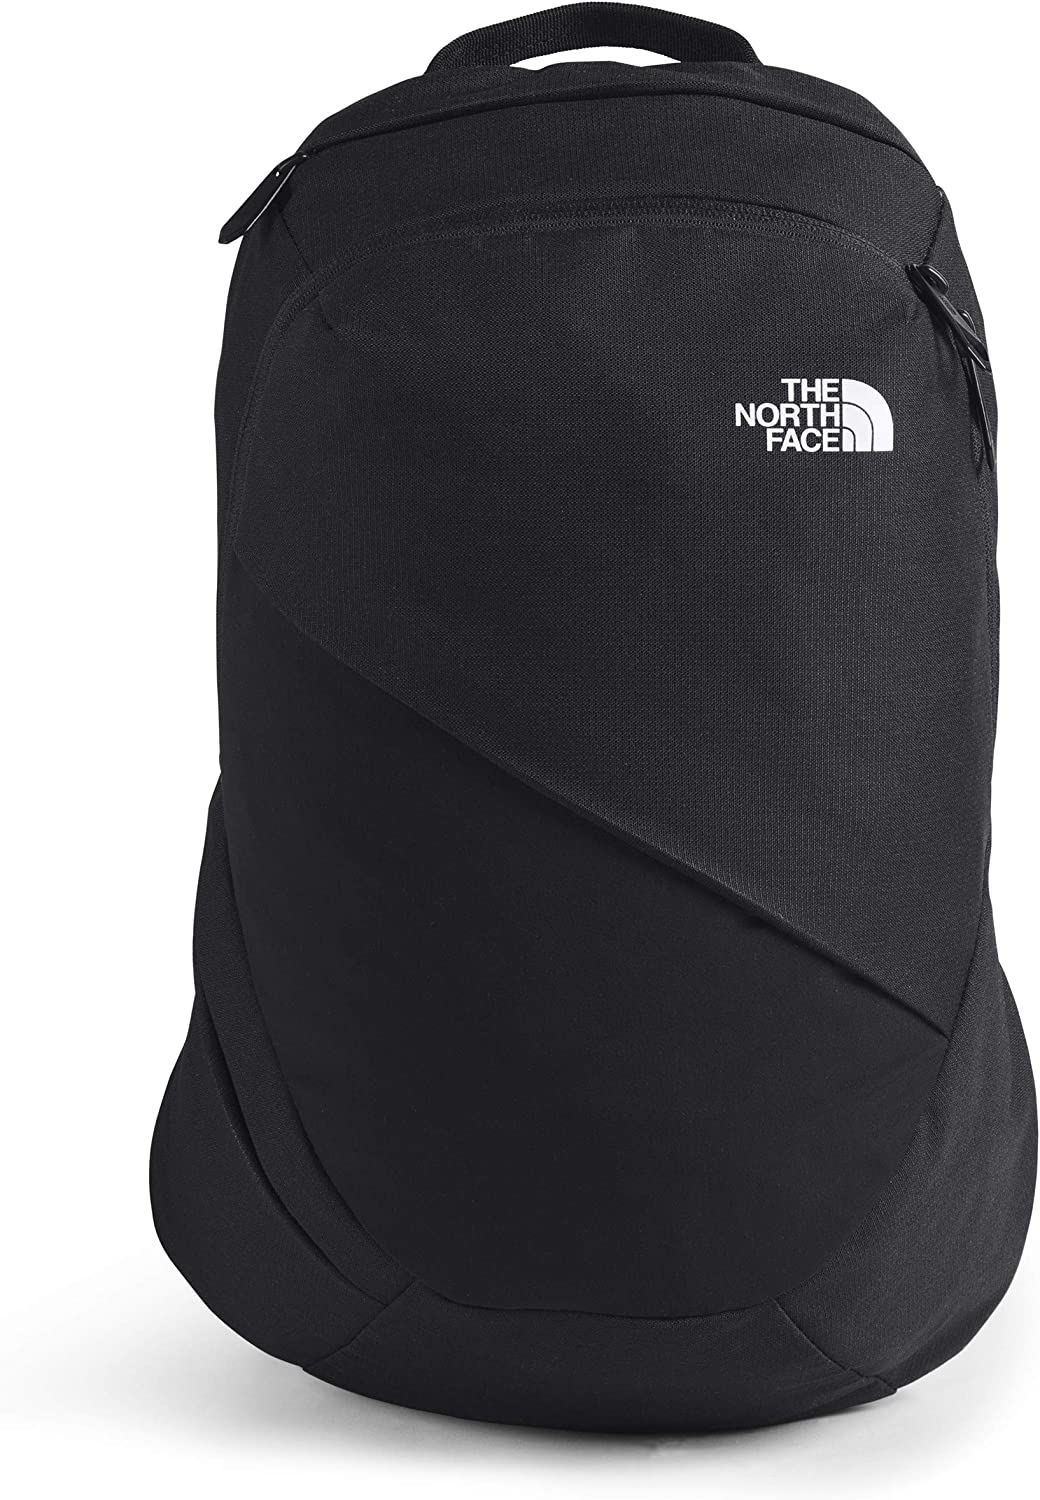 The North Face Women's Electra Commuter Backpack